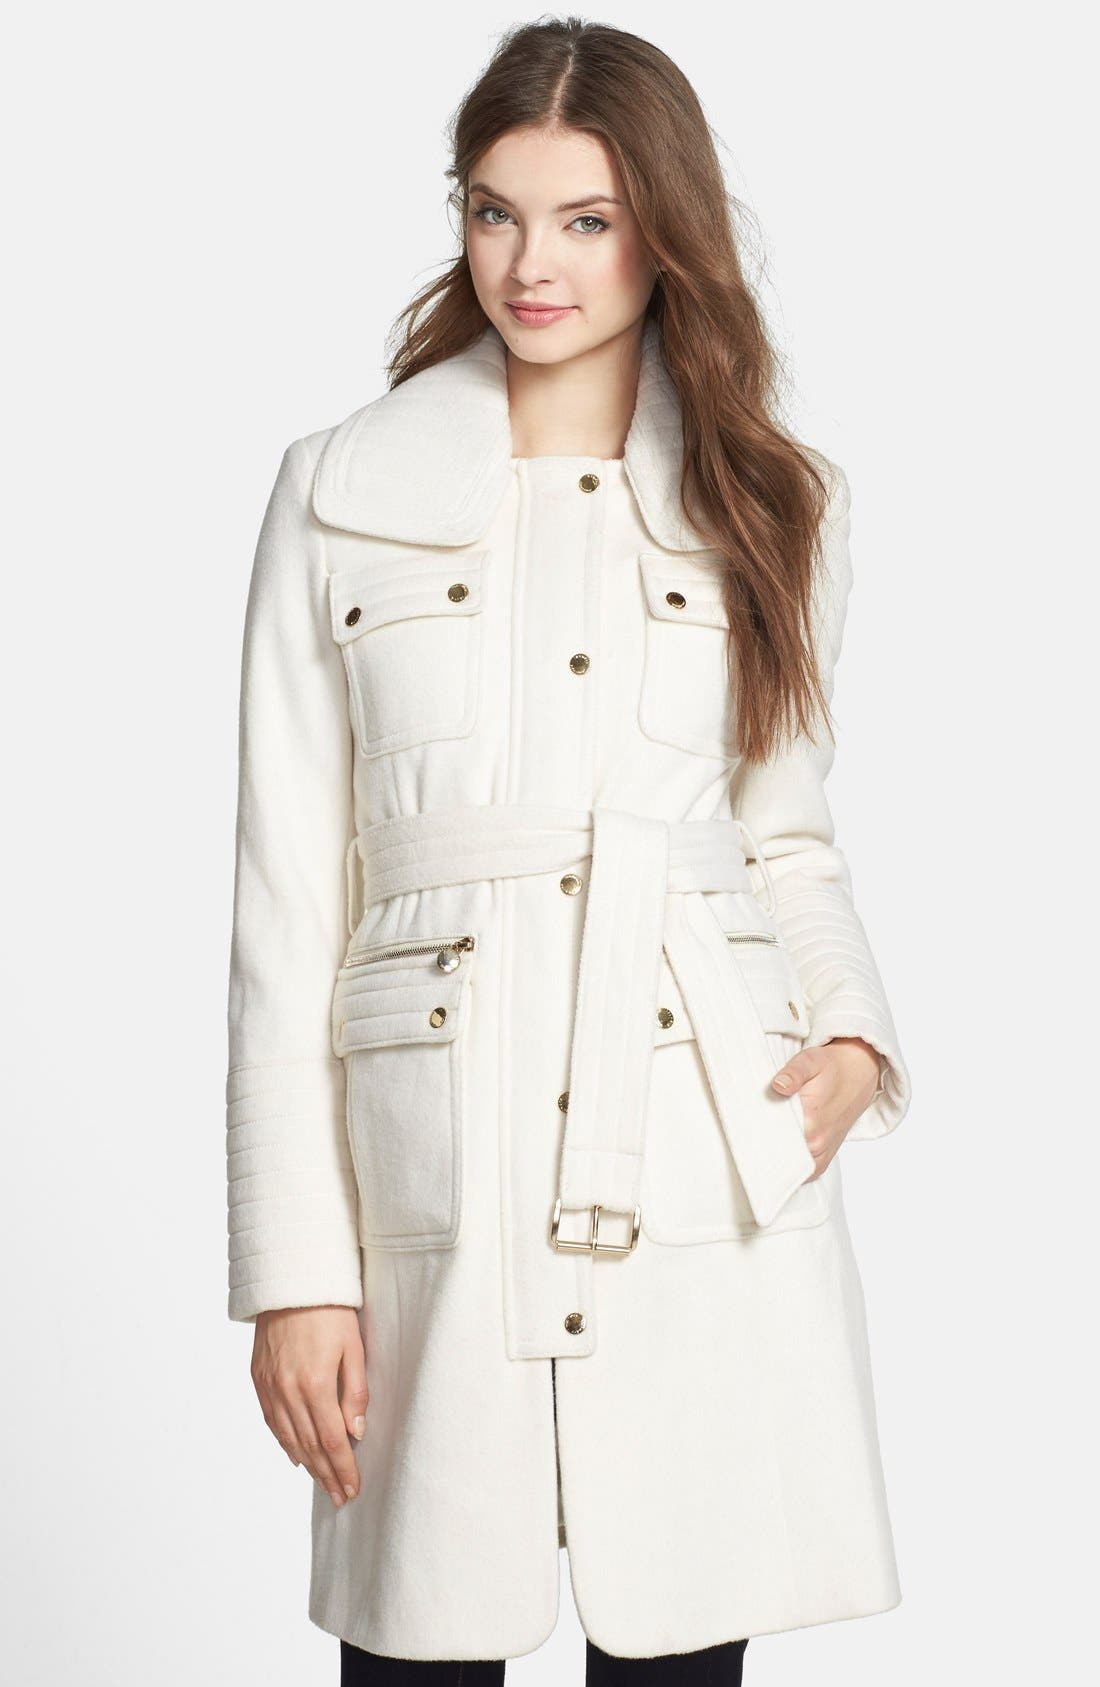 Main Image - Laundry by Shelli Segal Belted Wool Blend Trench Coat (Regular & Petite)